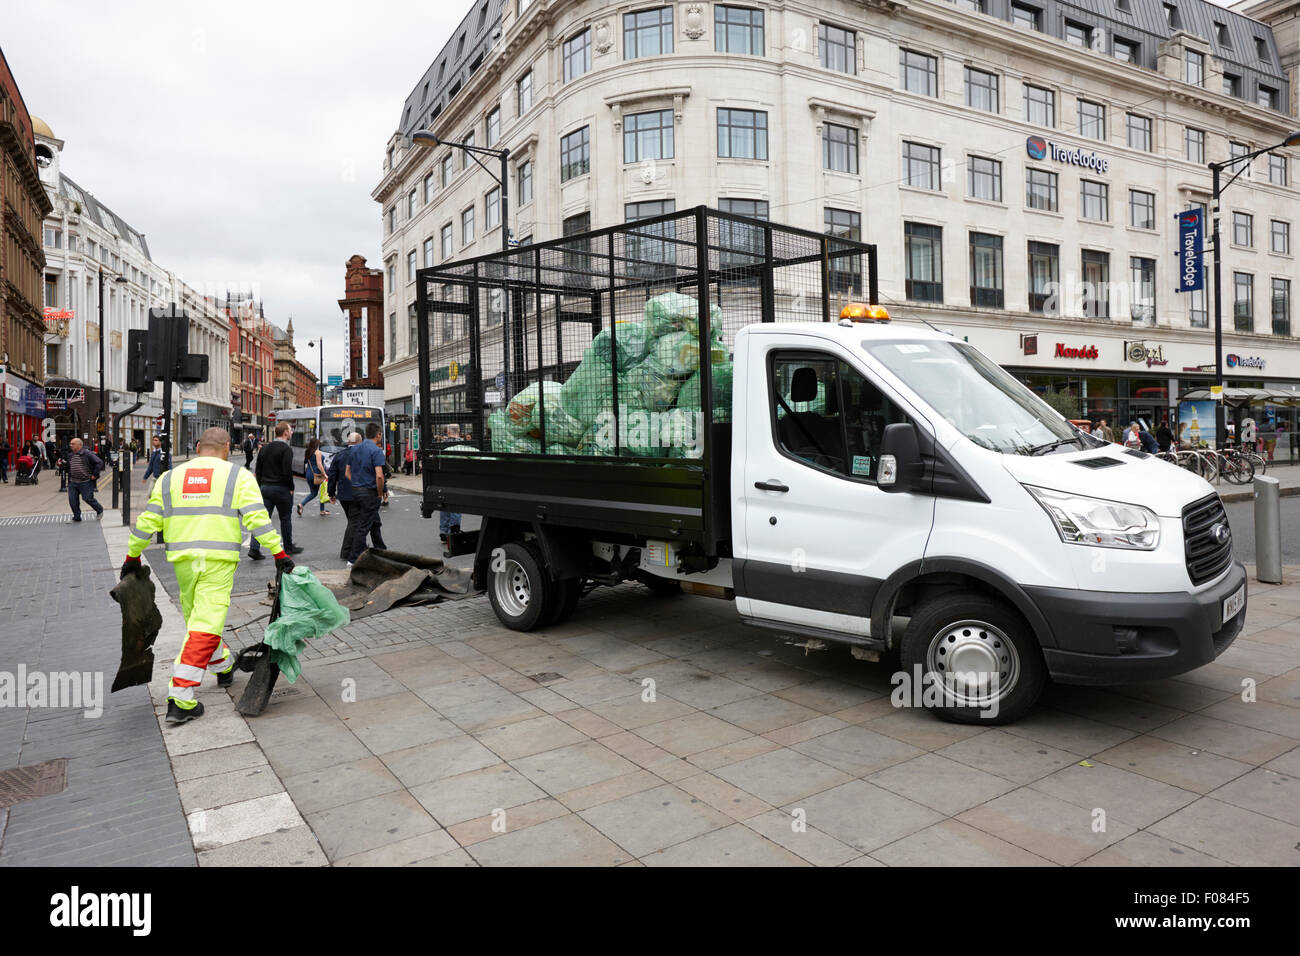 refuse cleaners tidying up piccadilly square Manchester England UK - Stock Image